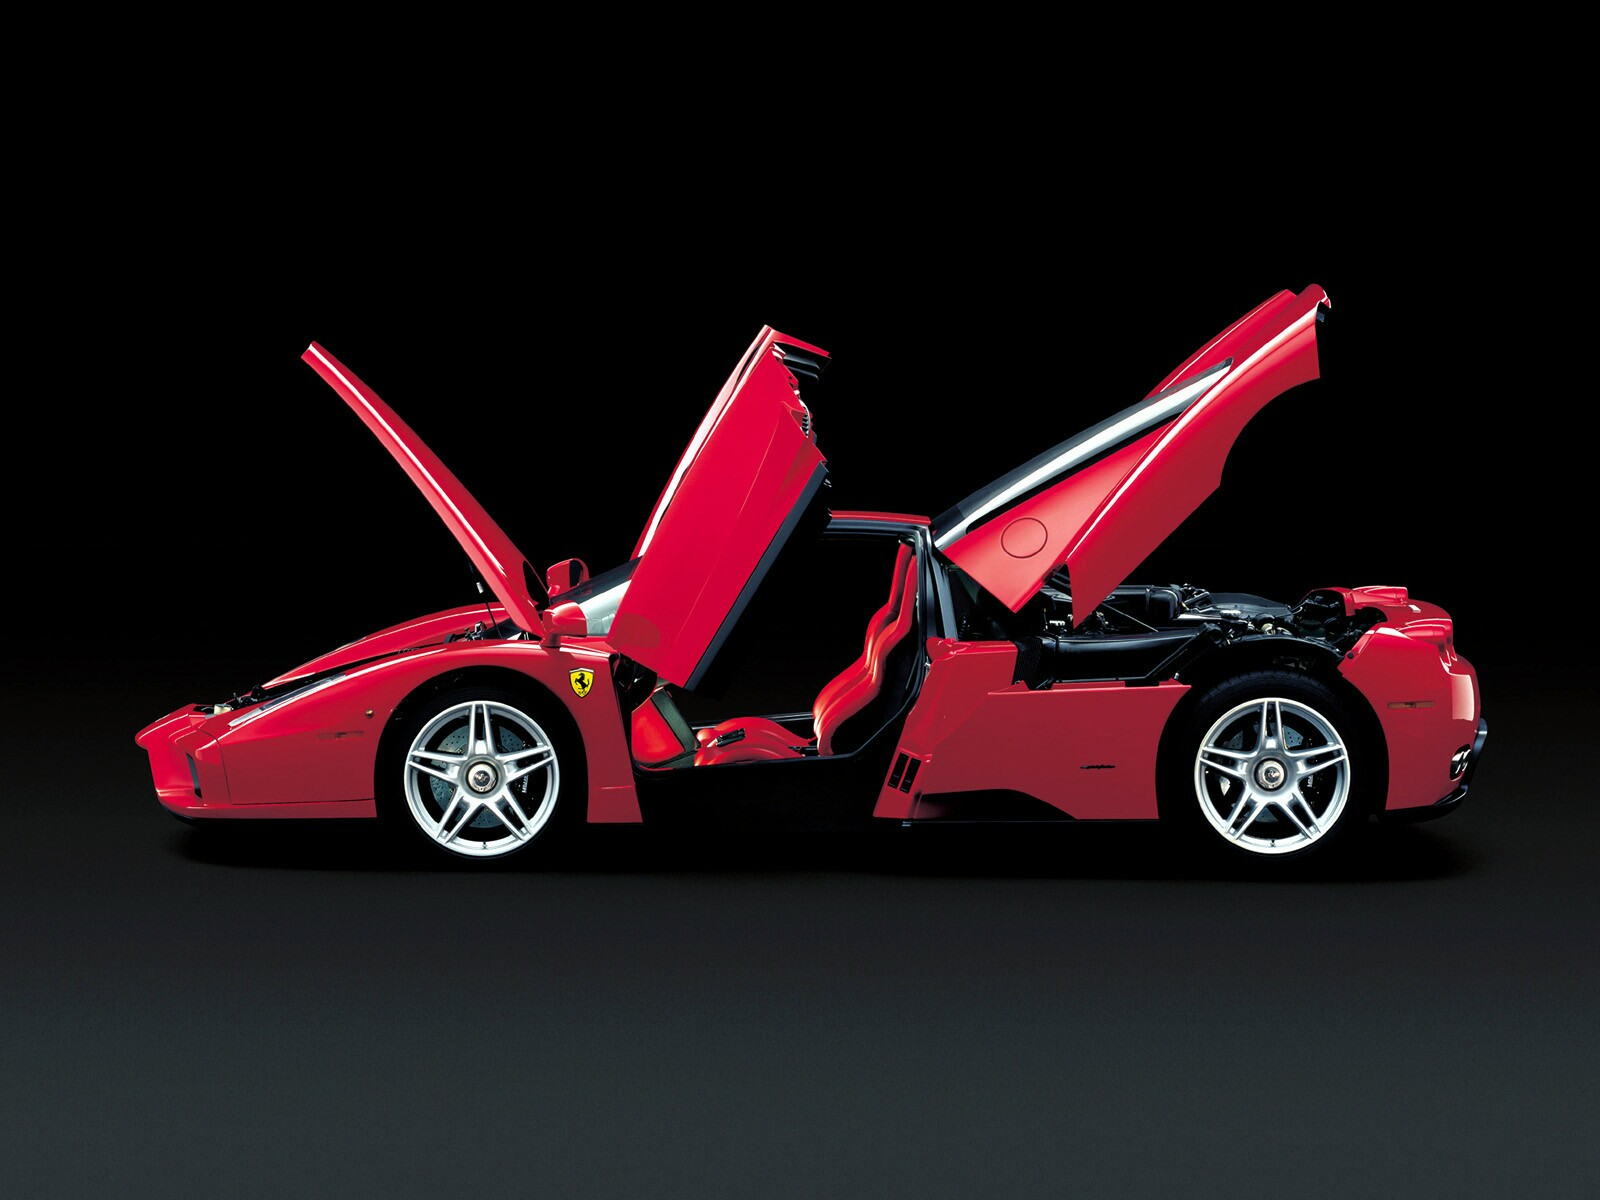 Ferrari Enzo HD Wallpaper